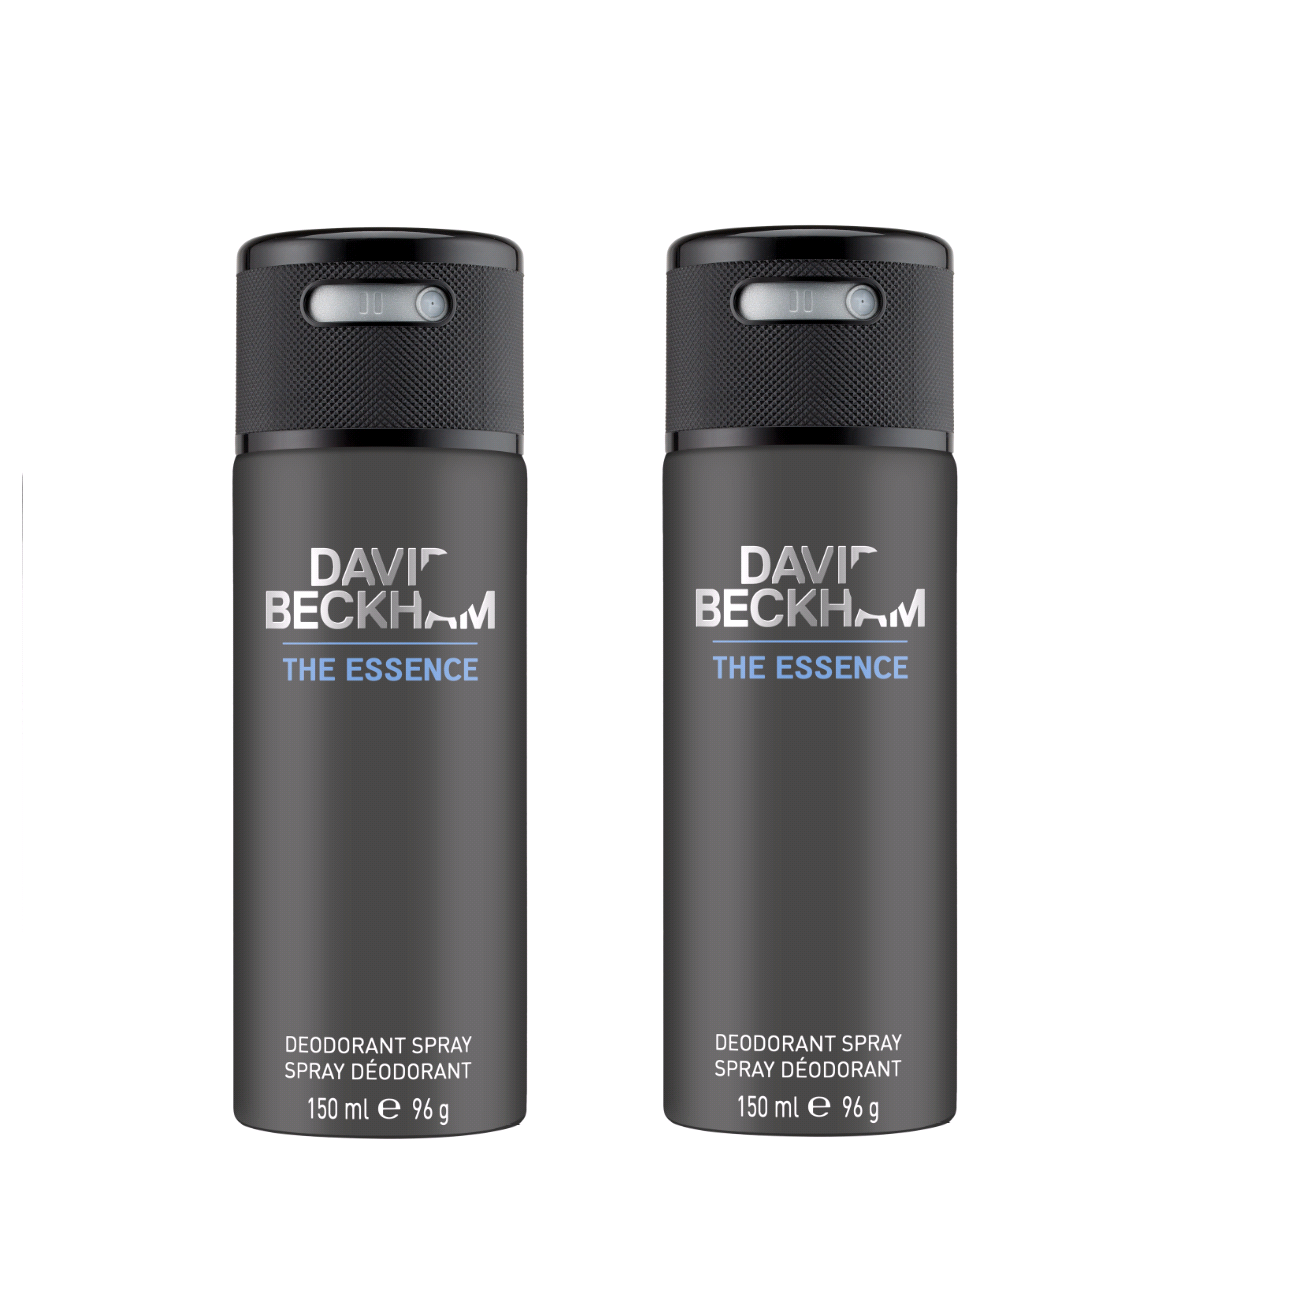 David Beckham - 2x The Essence Deodorant Spray 150 ml